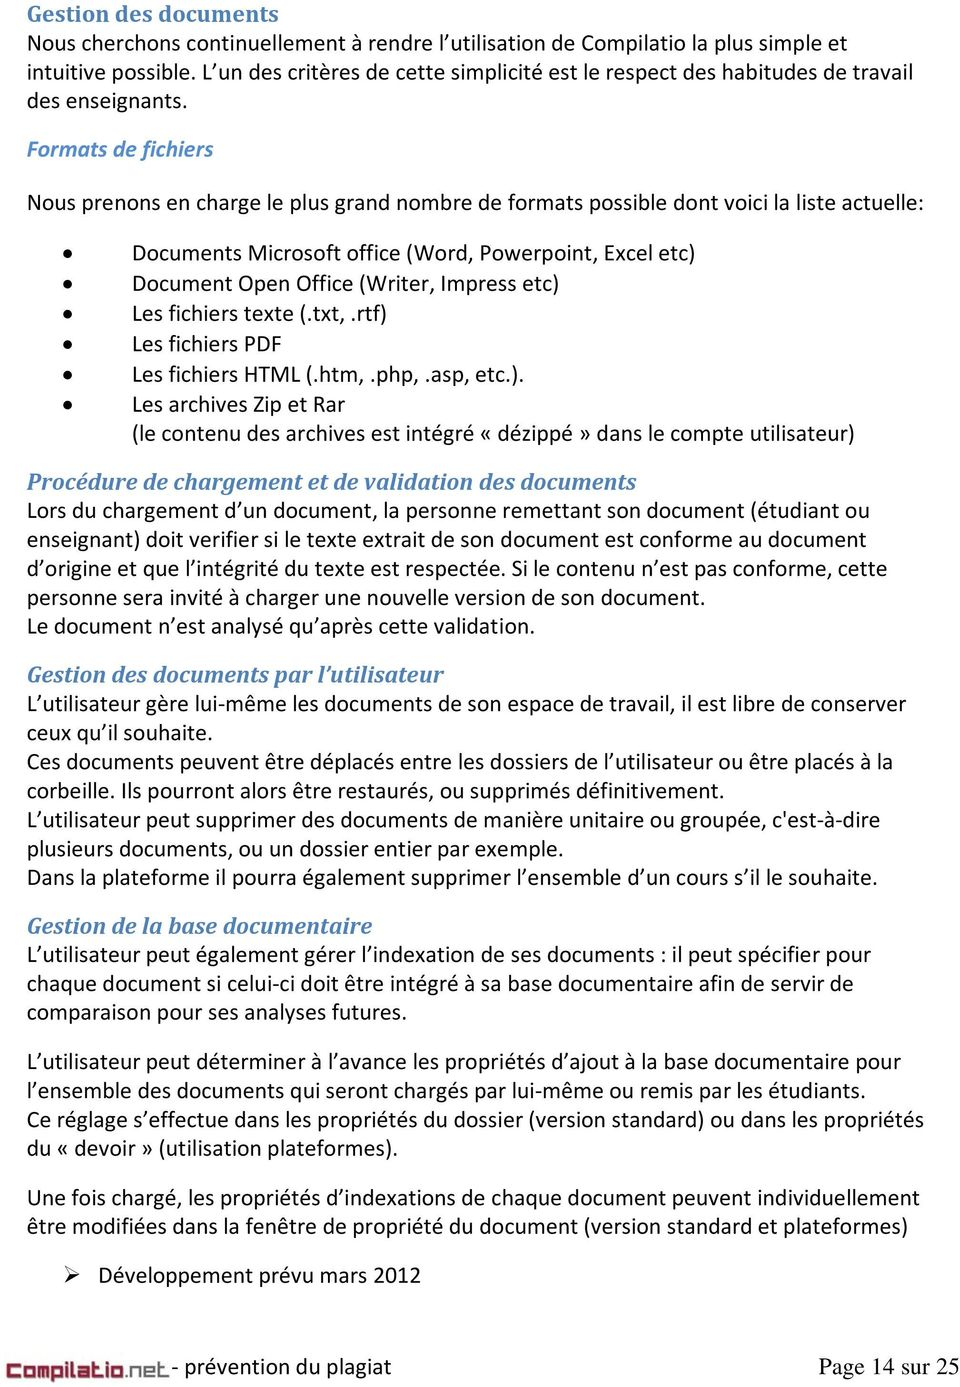 Formats de fichiers Nous prenons en charge le plus grand nombre de formats possible dont voici la liste actuelle: Documents Microsoft office (Word, Powerpoint, Excel etc) Document Open Office